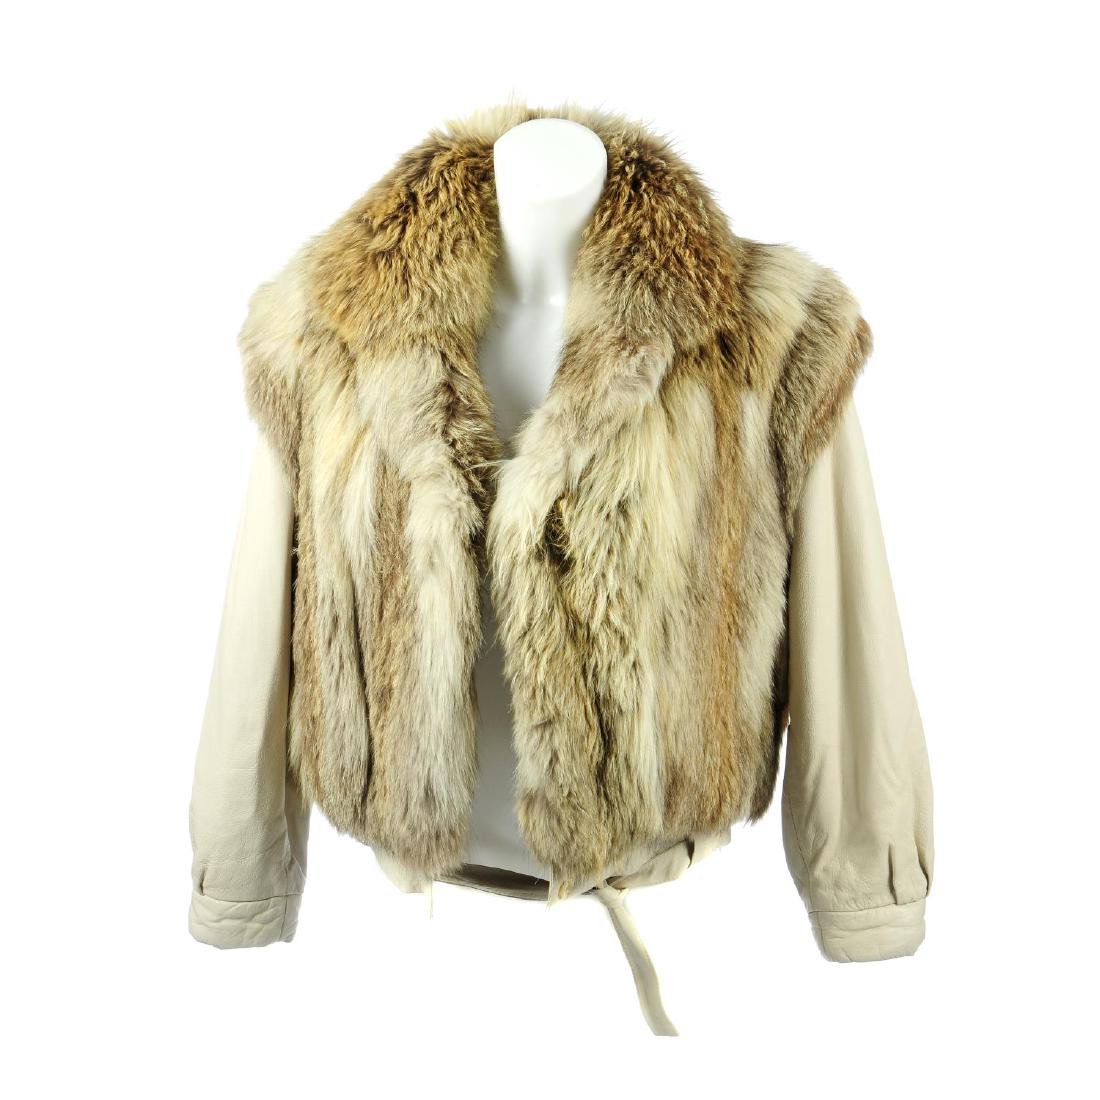 A wolf fur and leather jacket. Designed with wolf fur